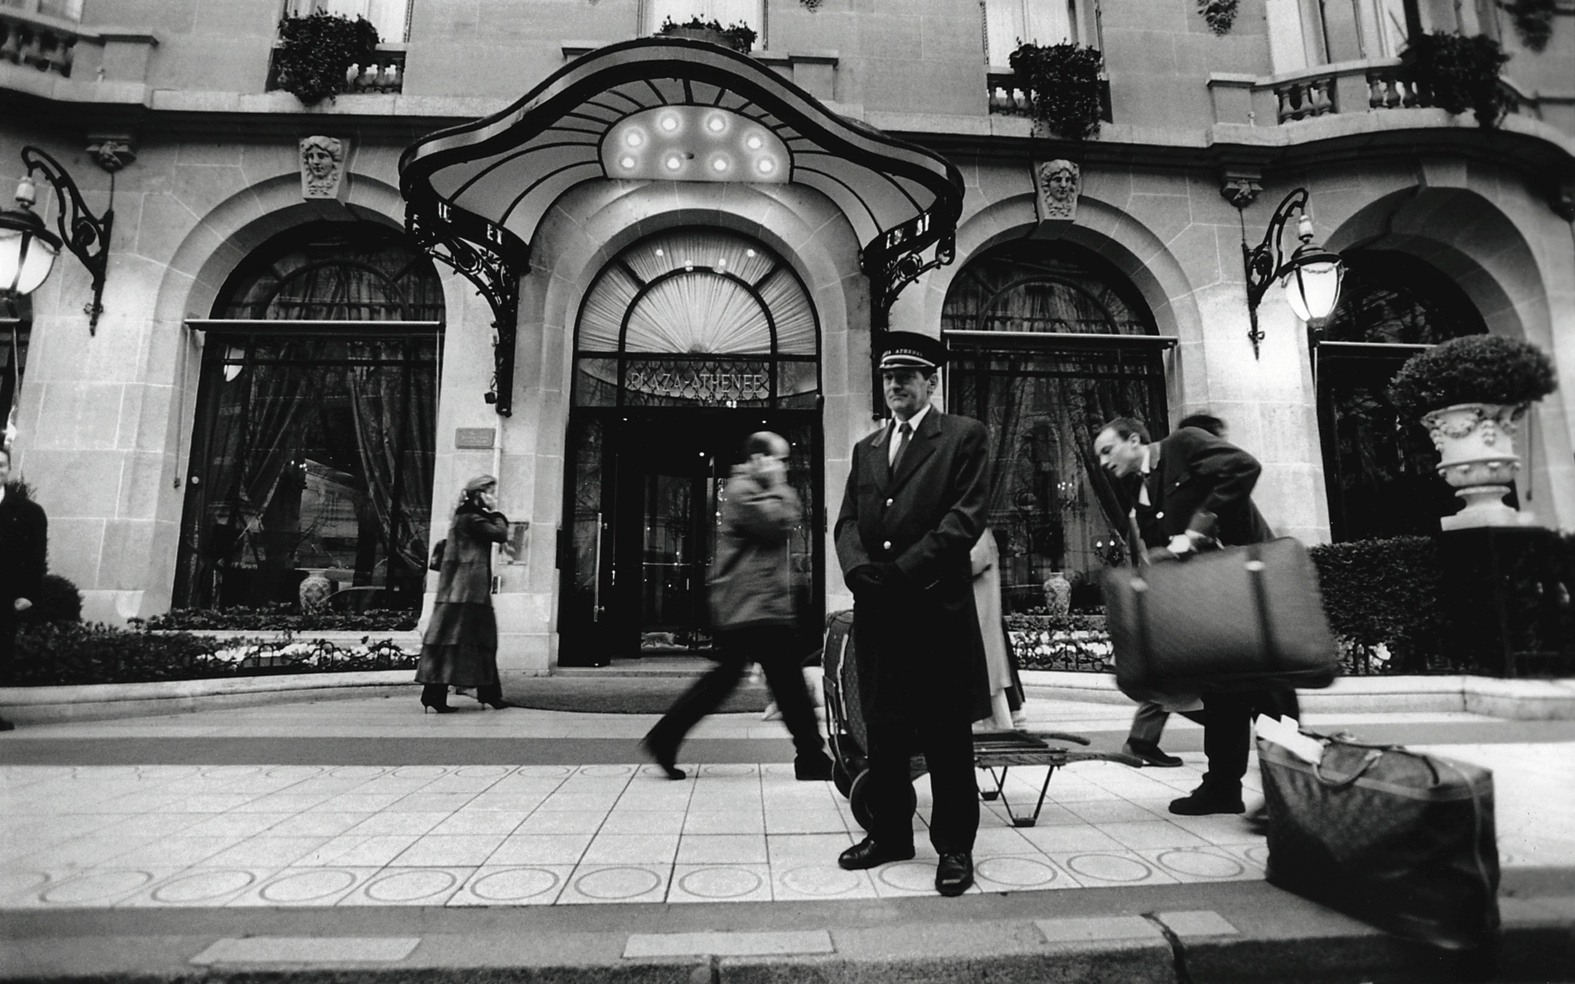 In Pictures: 100 Years of Paris' Beloved Hotel Plaza Athénée